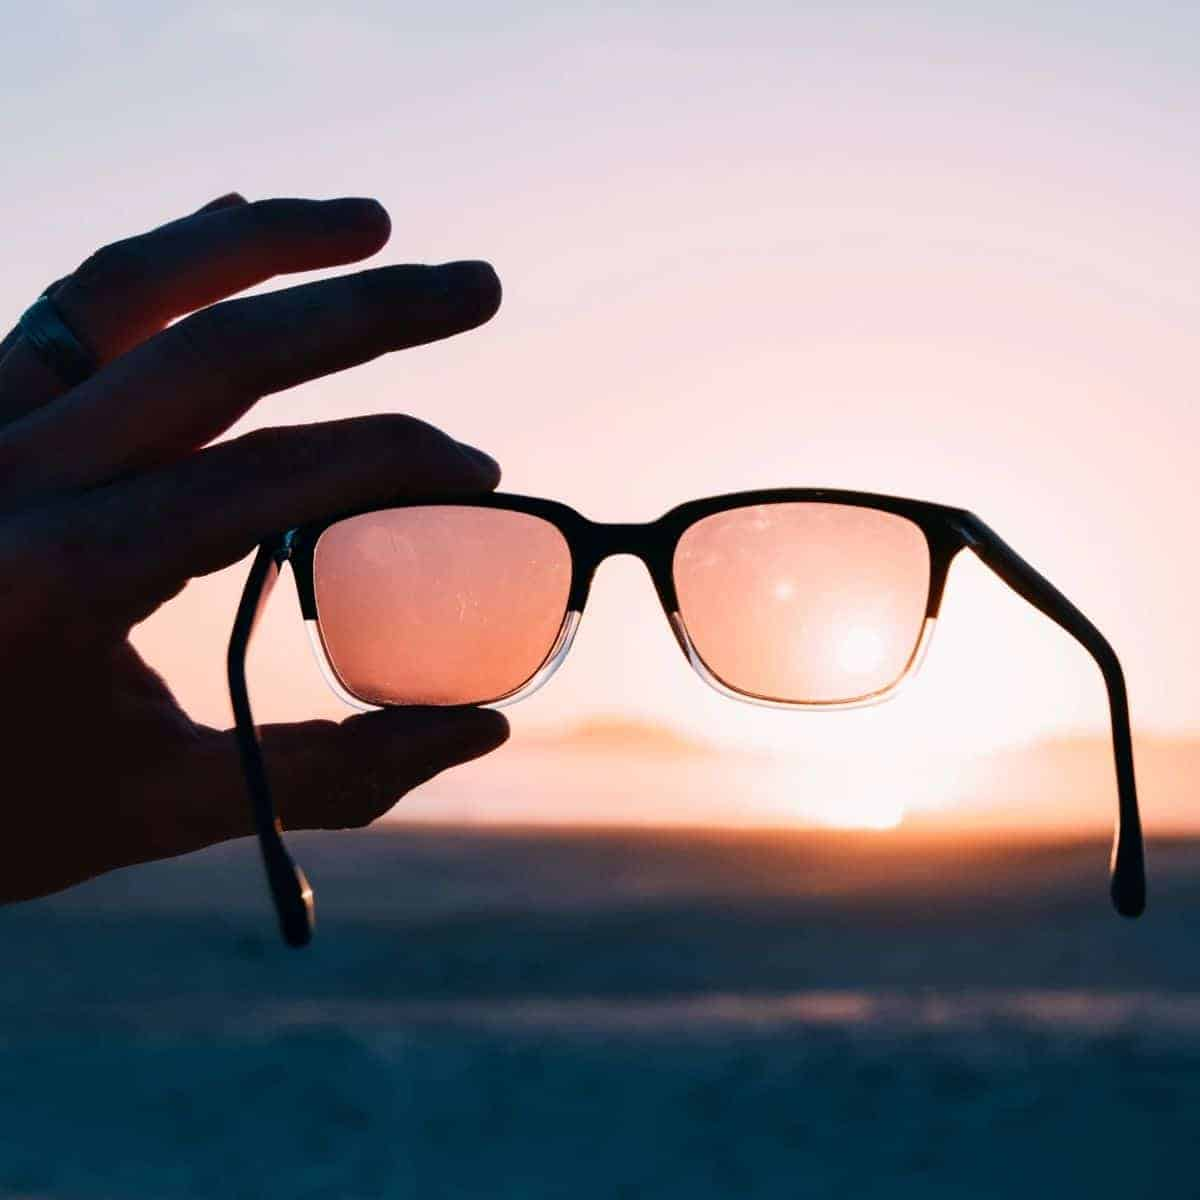 Close-up of a persons hand holding sunglasses up to a sunset.